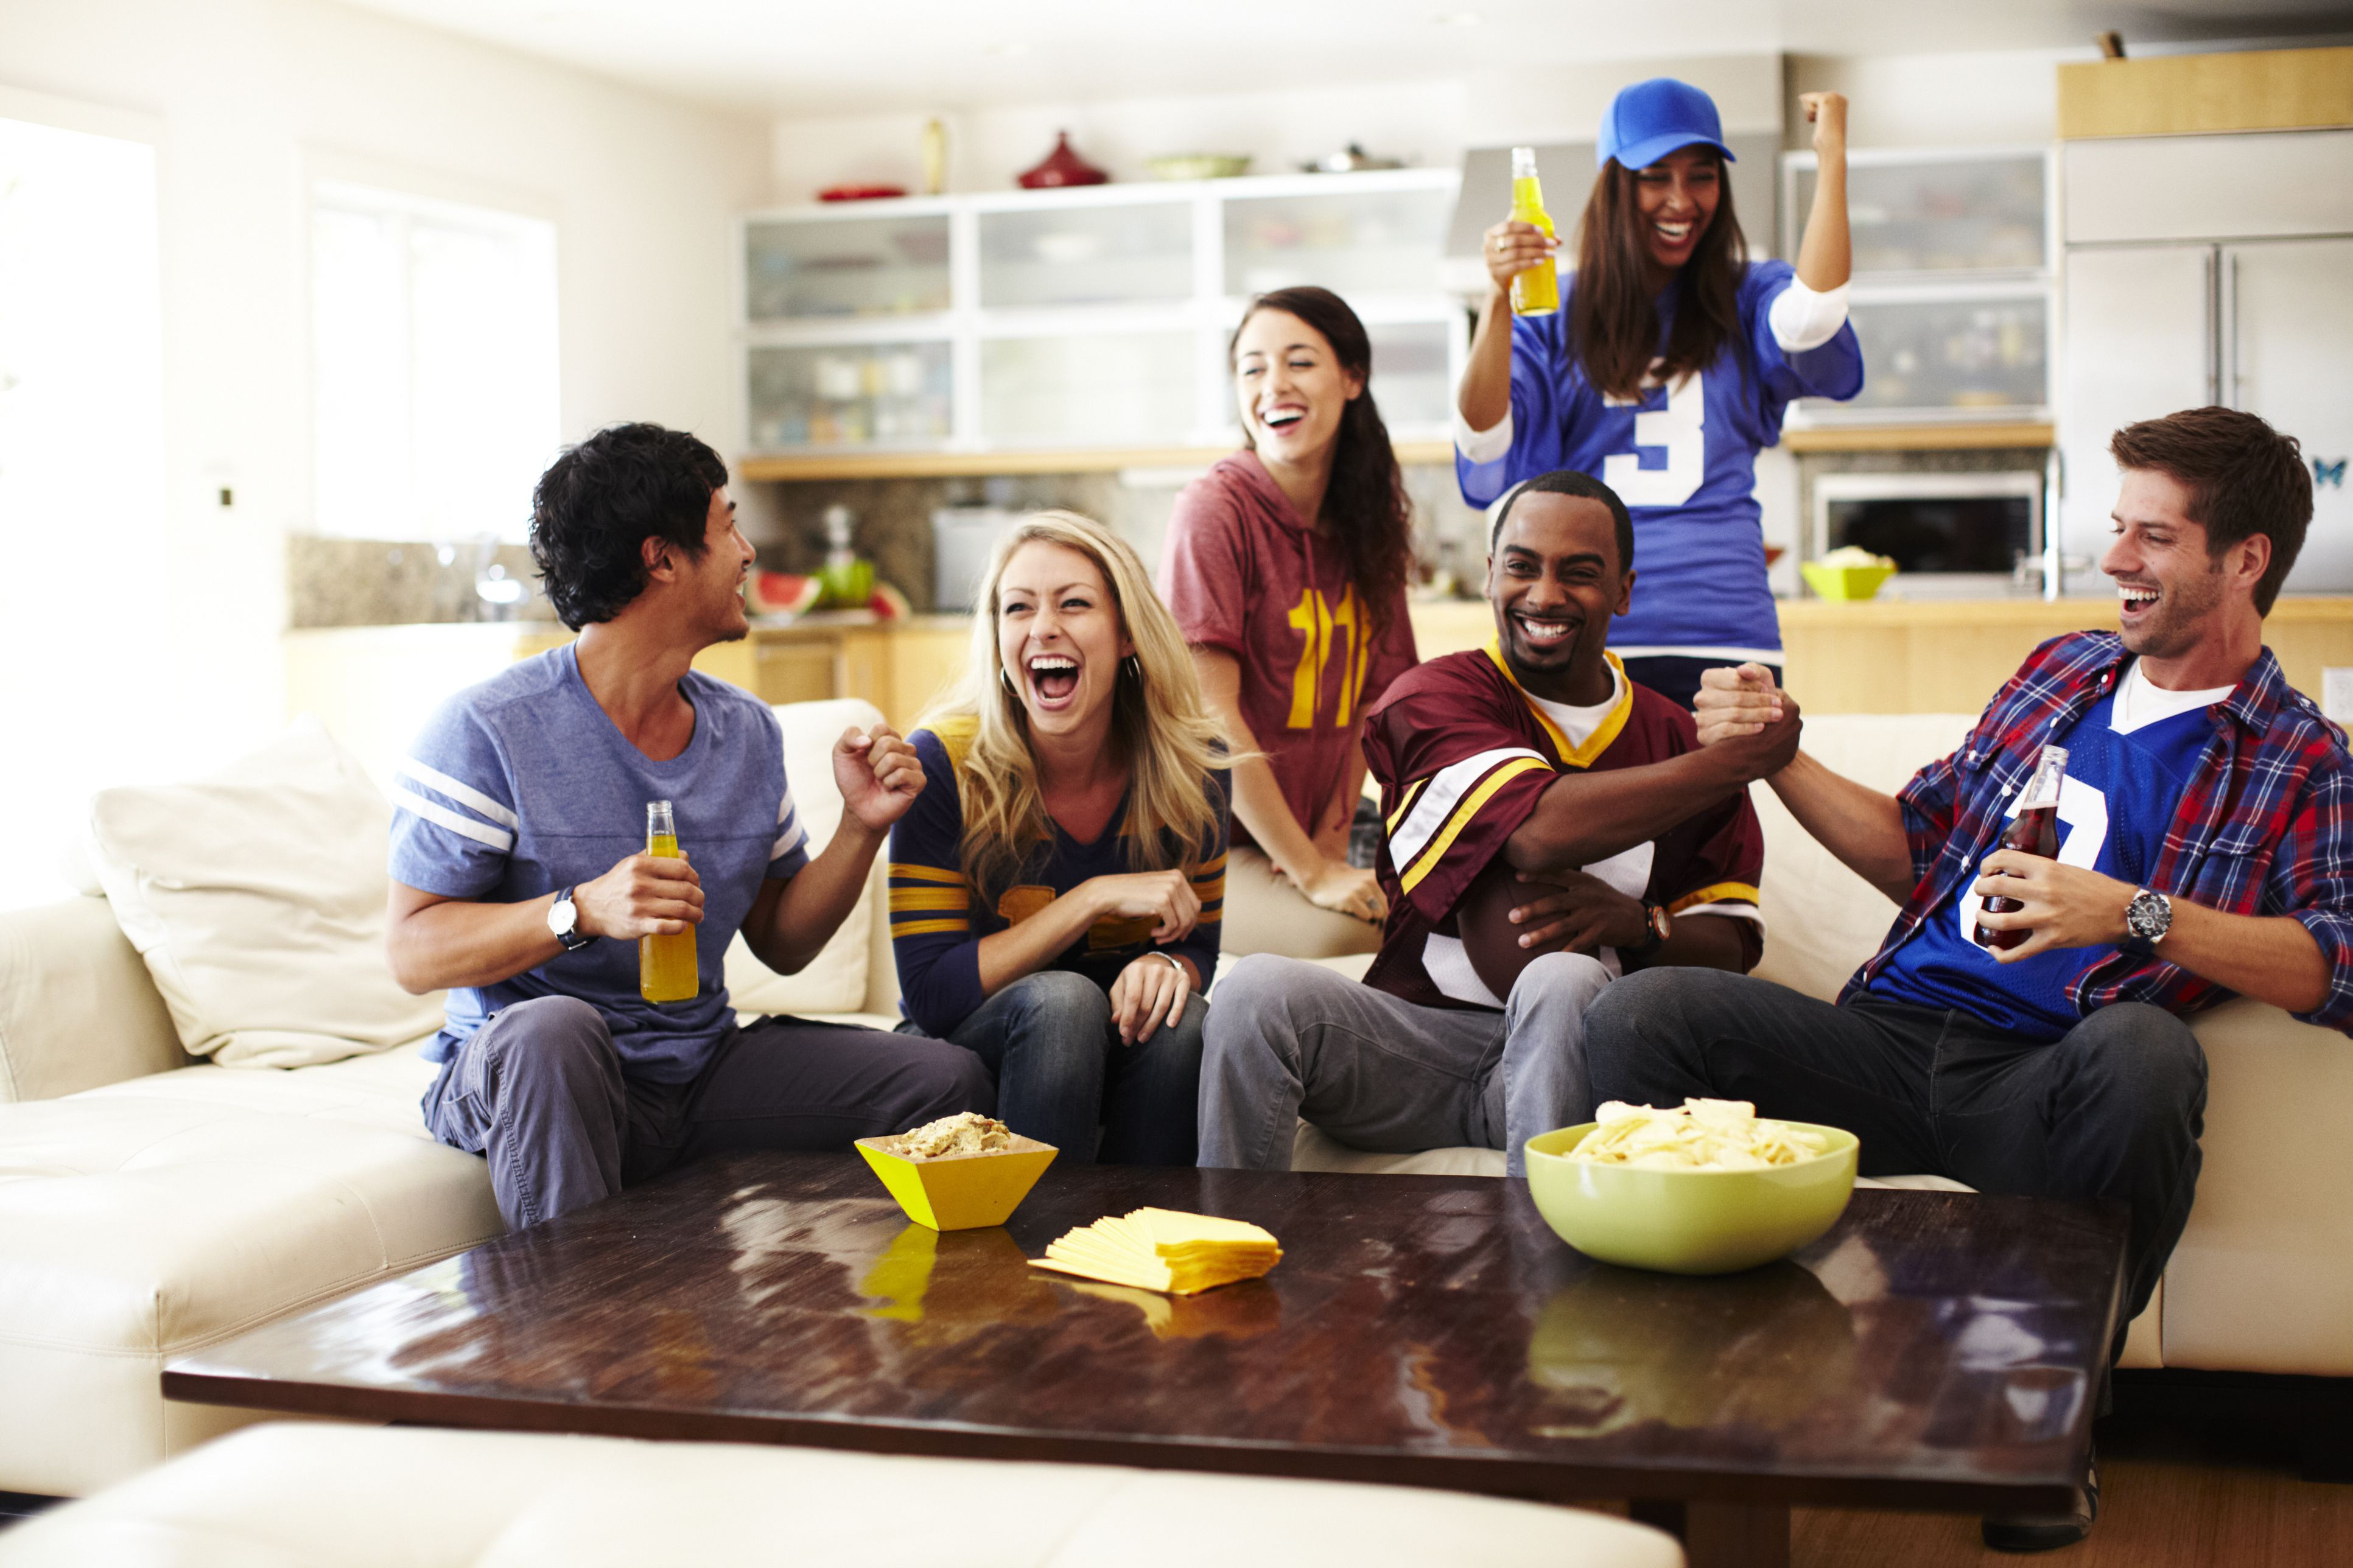 23 Super Bowl Party Games And Ideas